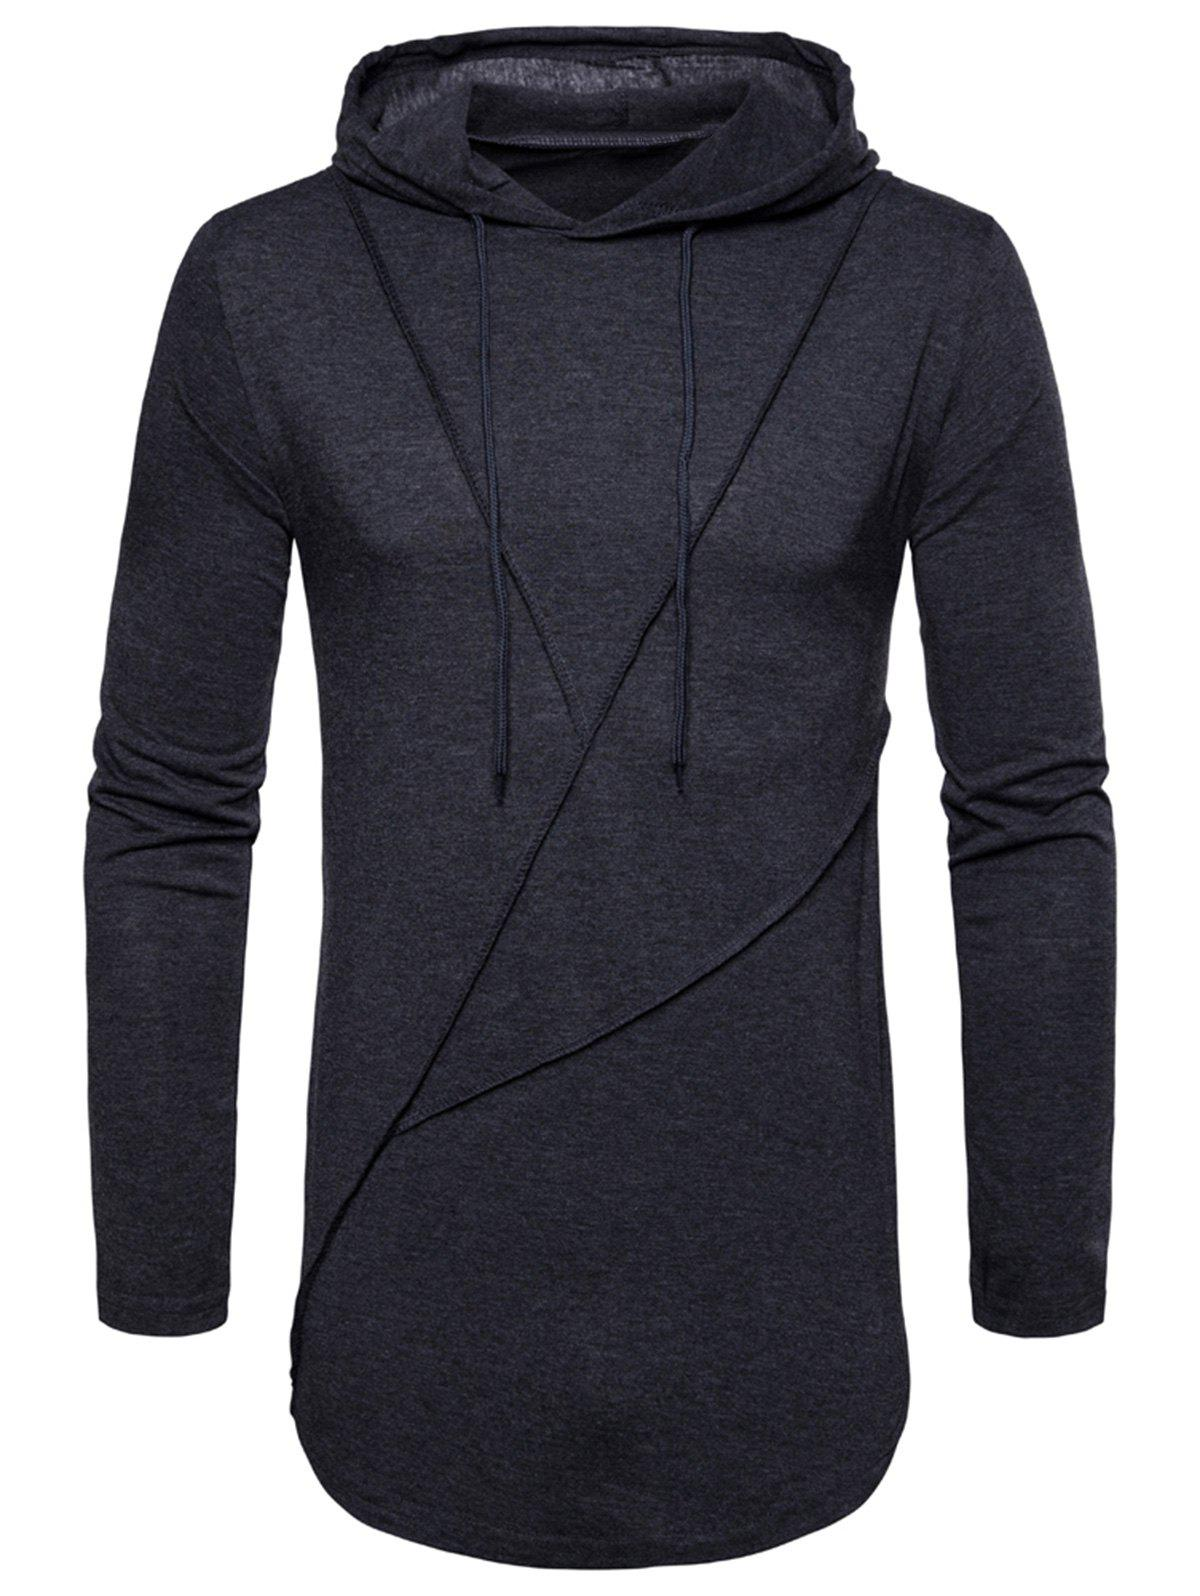 Store Long Sleeve Solid Color Zip Hem Hooded T-shirt